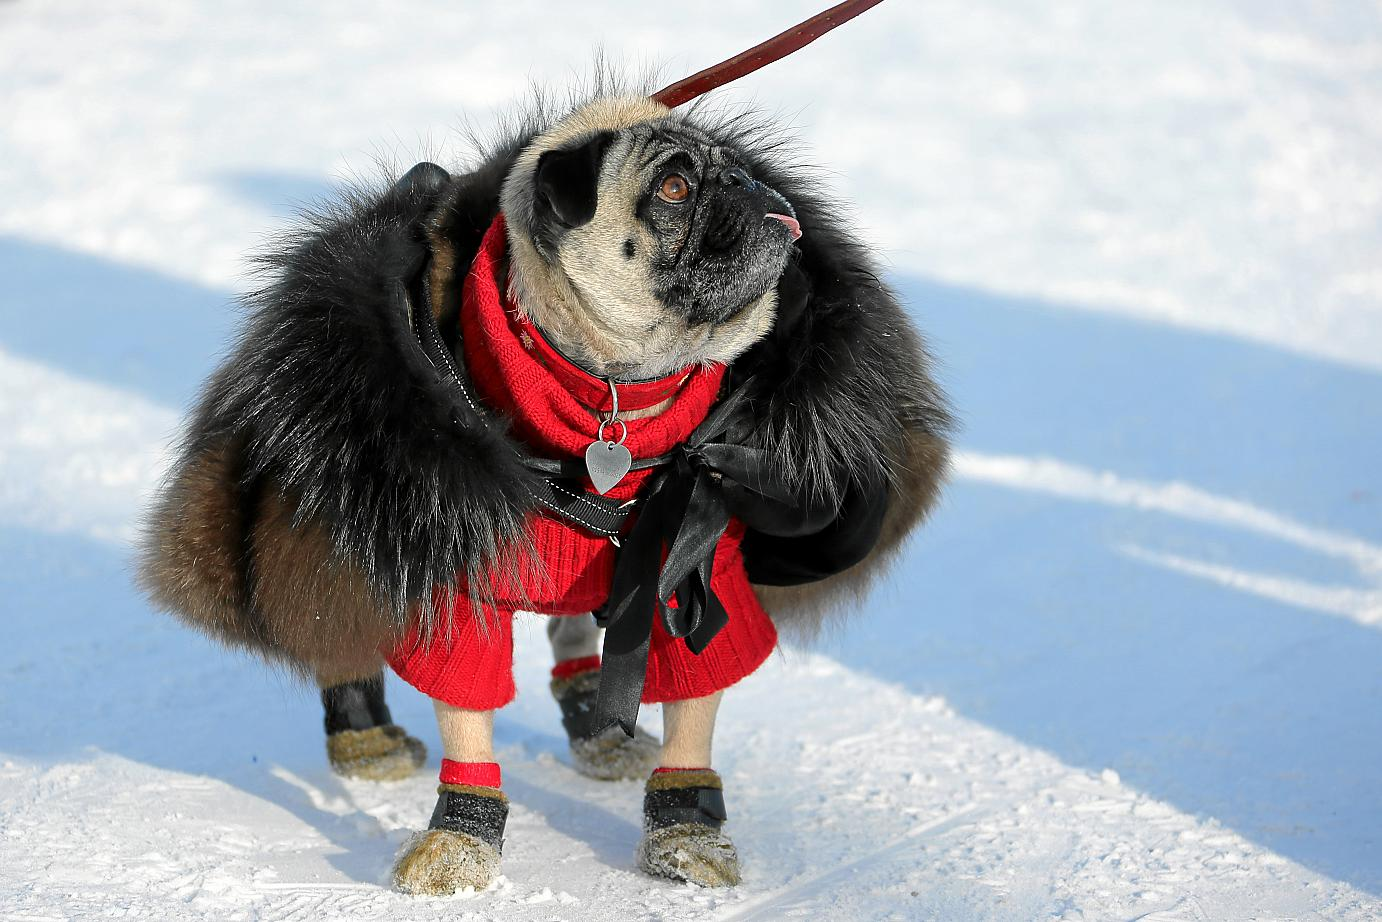 Strengthened by state-of-the-art equipment and clad in bespoke outfits, individuals conscious of their image make sure to offer an immaculate appearance around the clock. A mink coat on an astonished pug is the least canine chique dictates! :-)